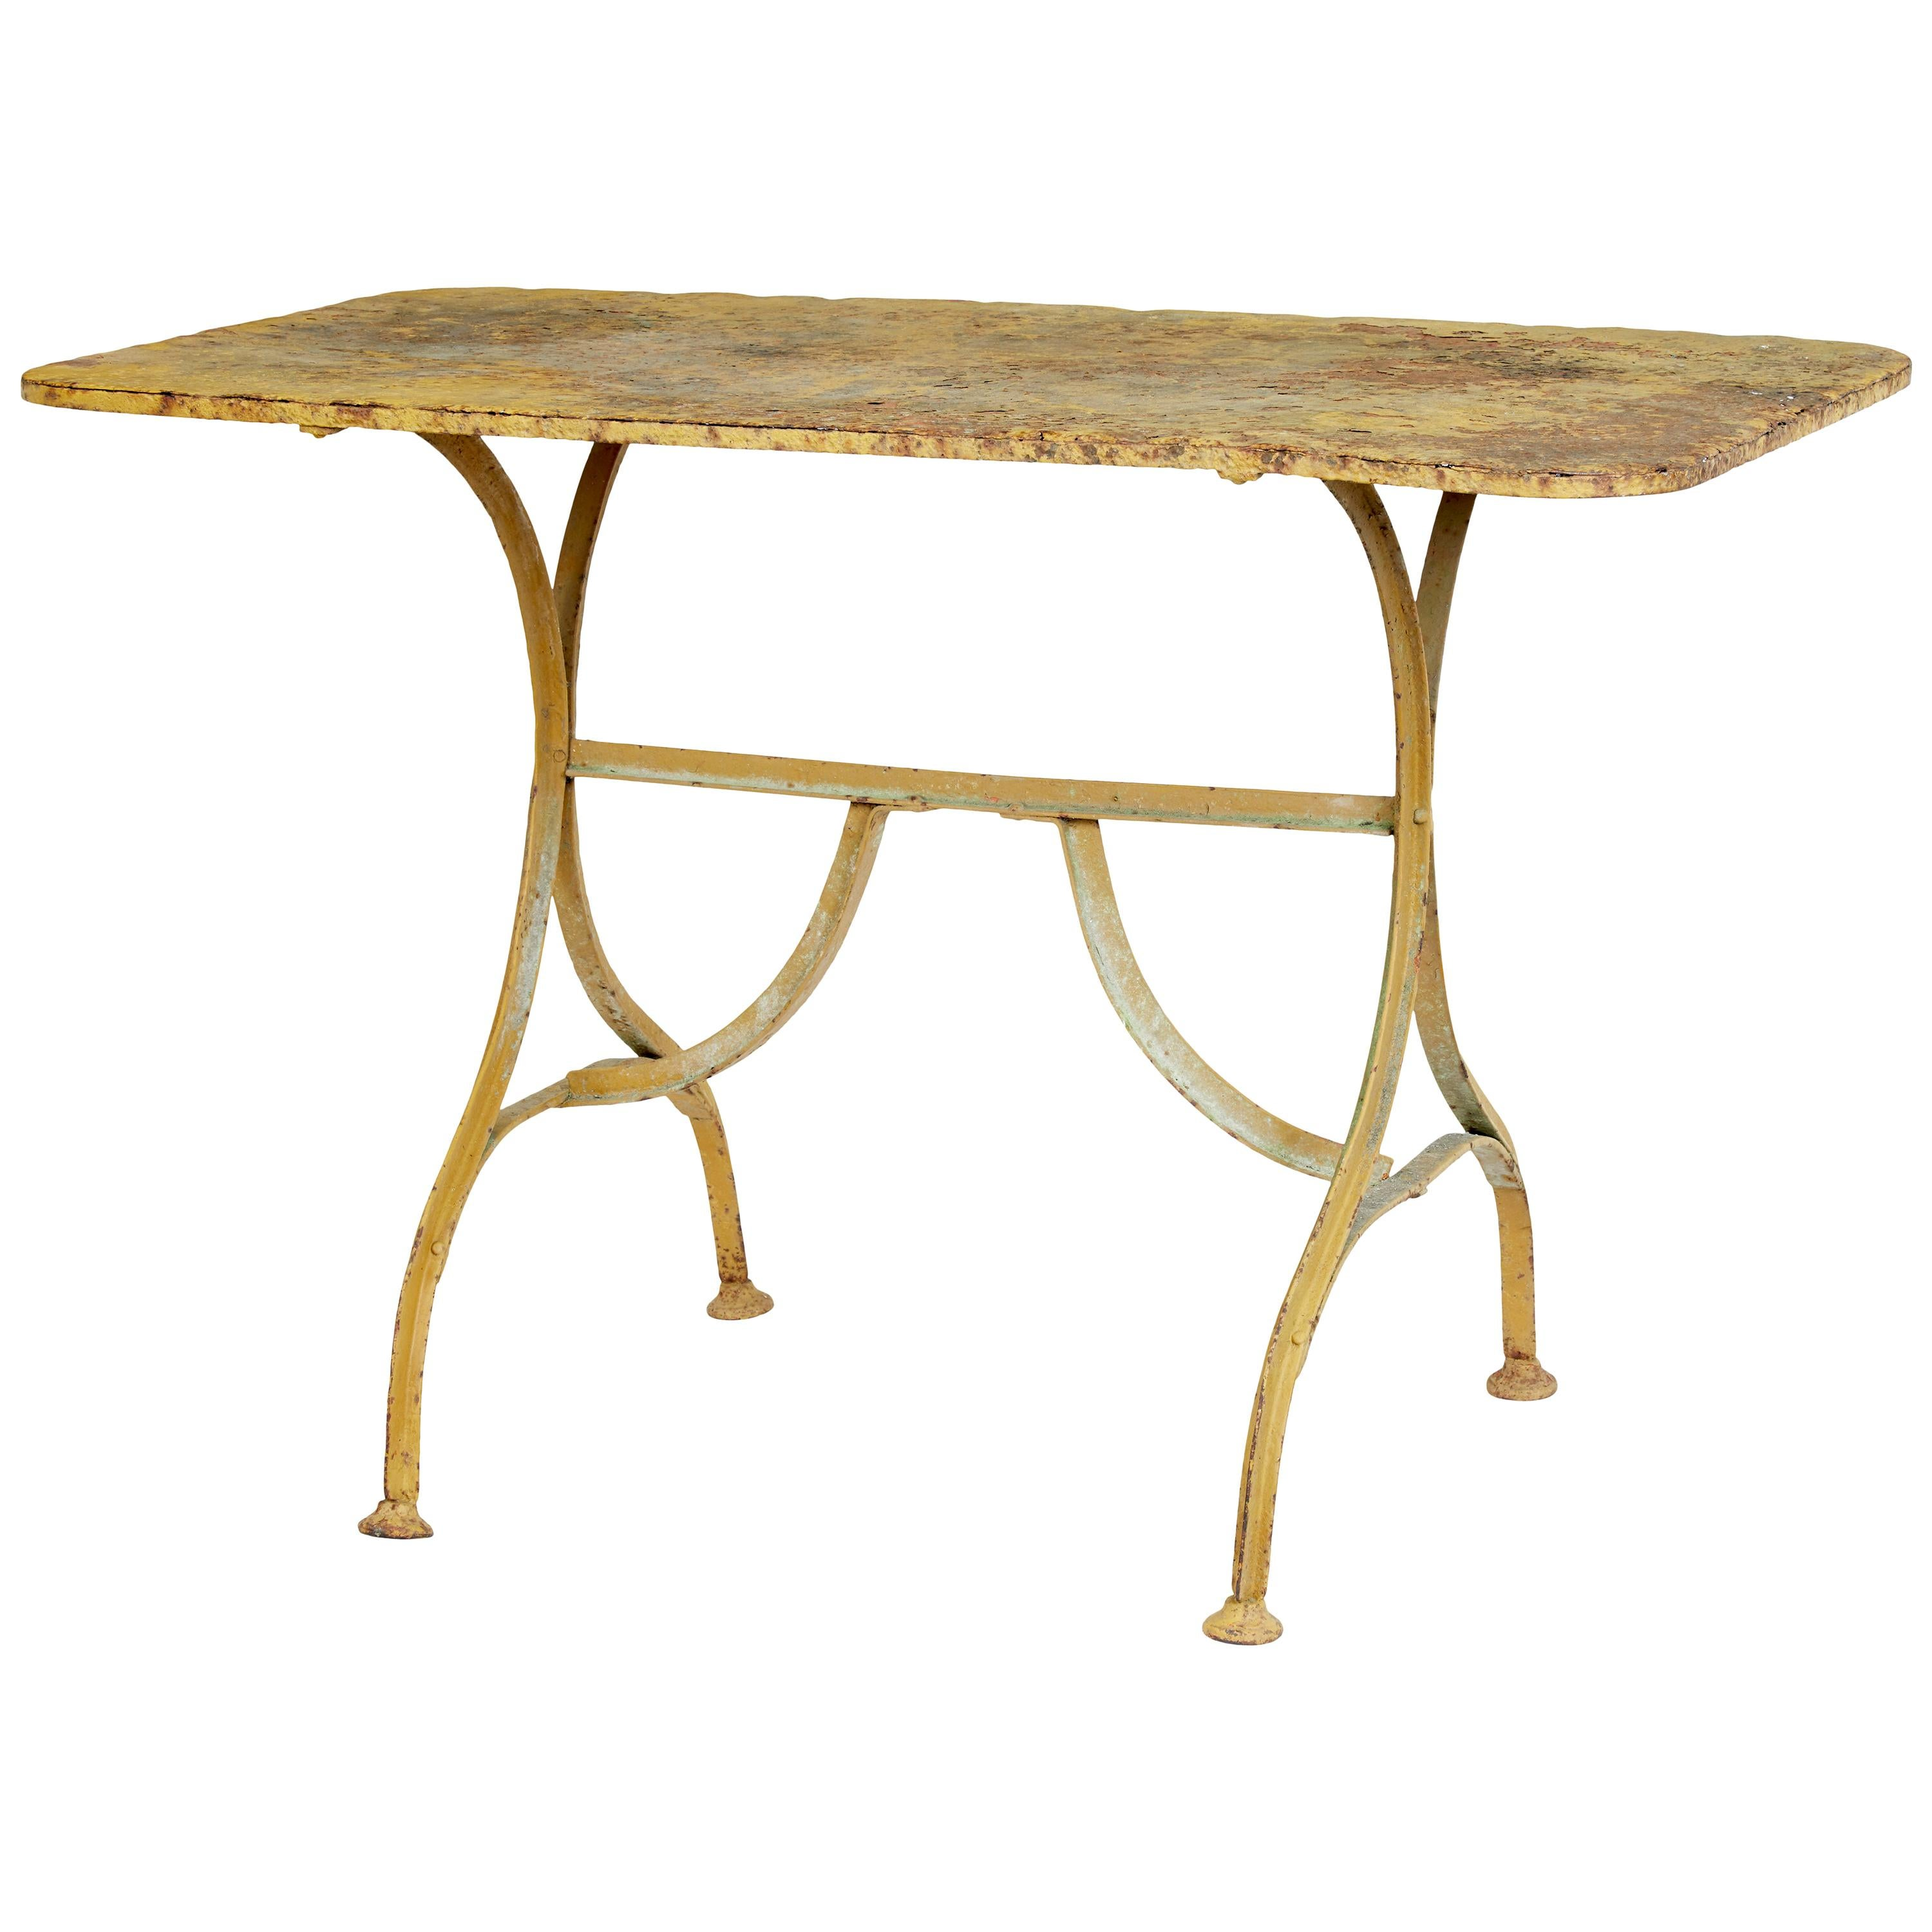 Late 19th Century Painted Cast Iron Garden Table